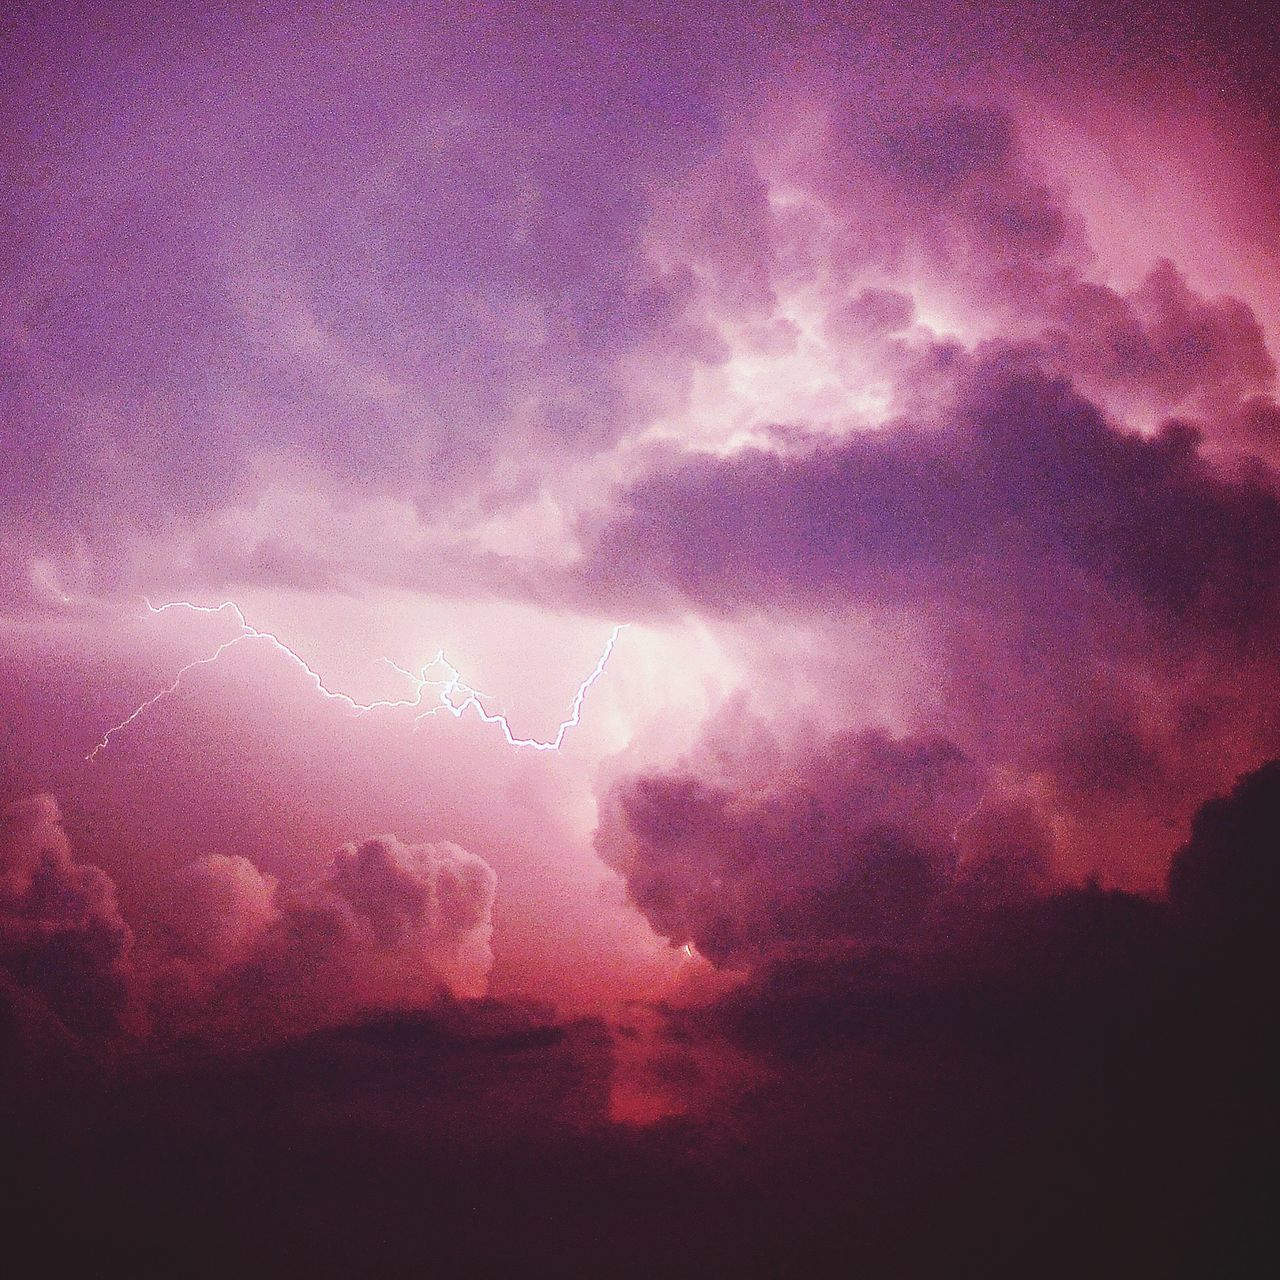 Low Angle View Of Lightning In Cloudy Sky During Stormy Weather